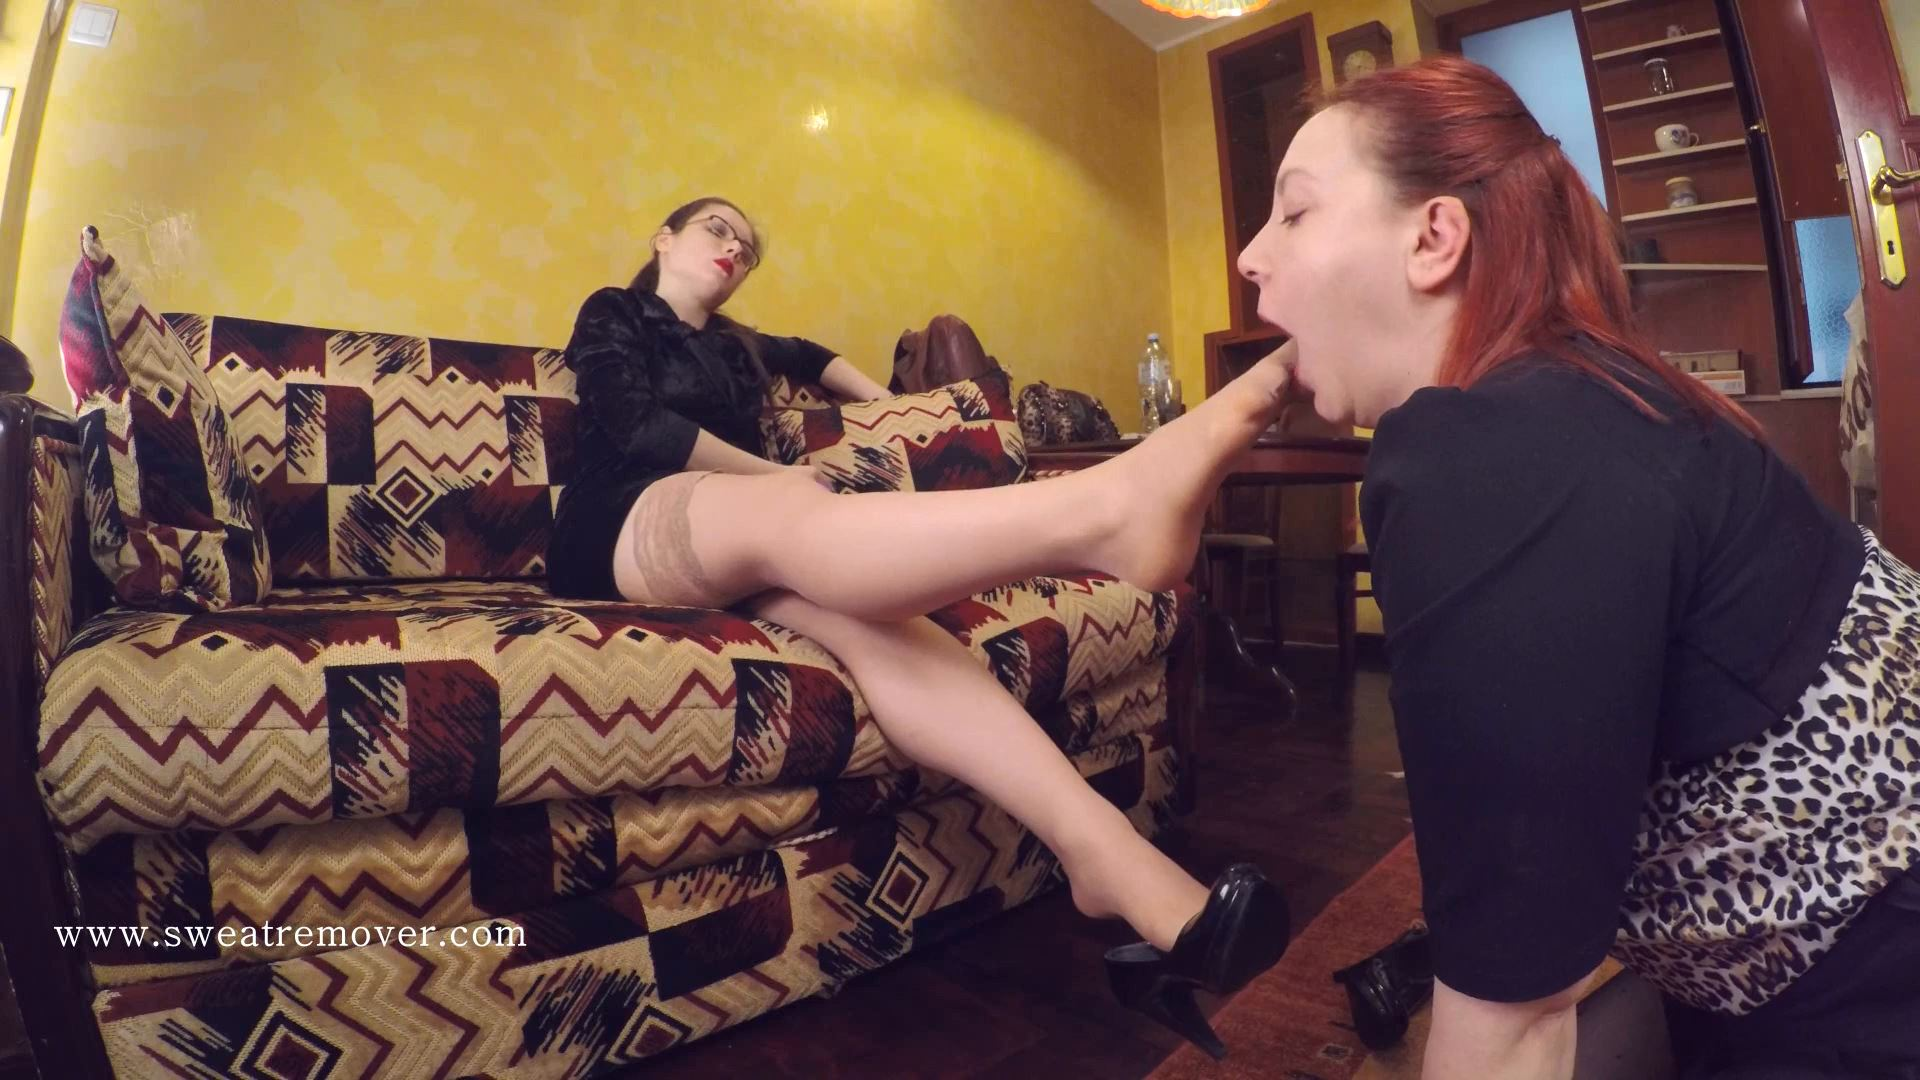 Goddess Bianca In Scene: Wash my soles and massage them with your tongue Part 2 - SWEATREMOVER - FULL HD/1080p/MP4